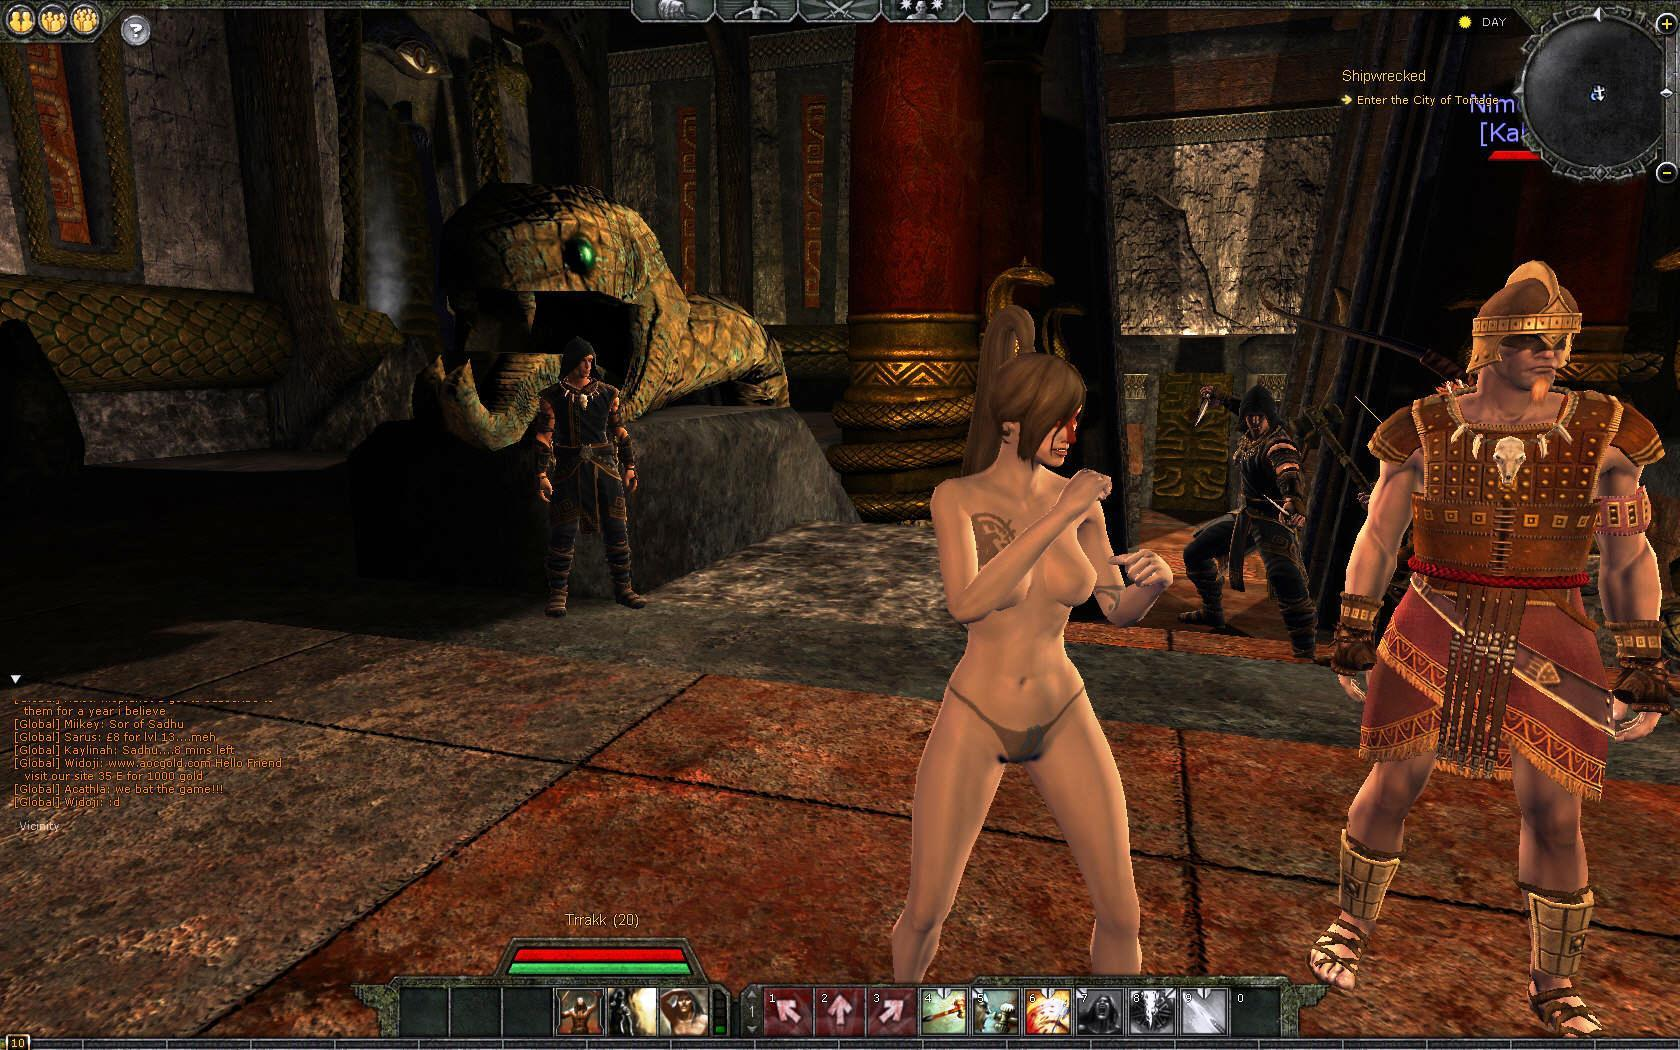 Age of conan unchained nude mod nude pictures